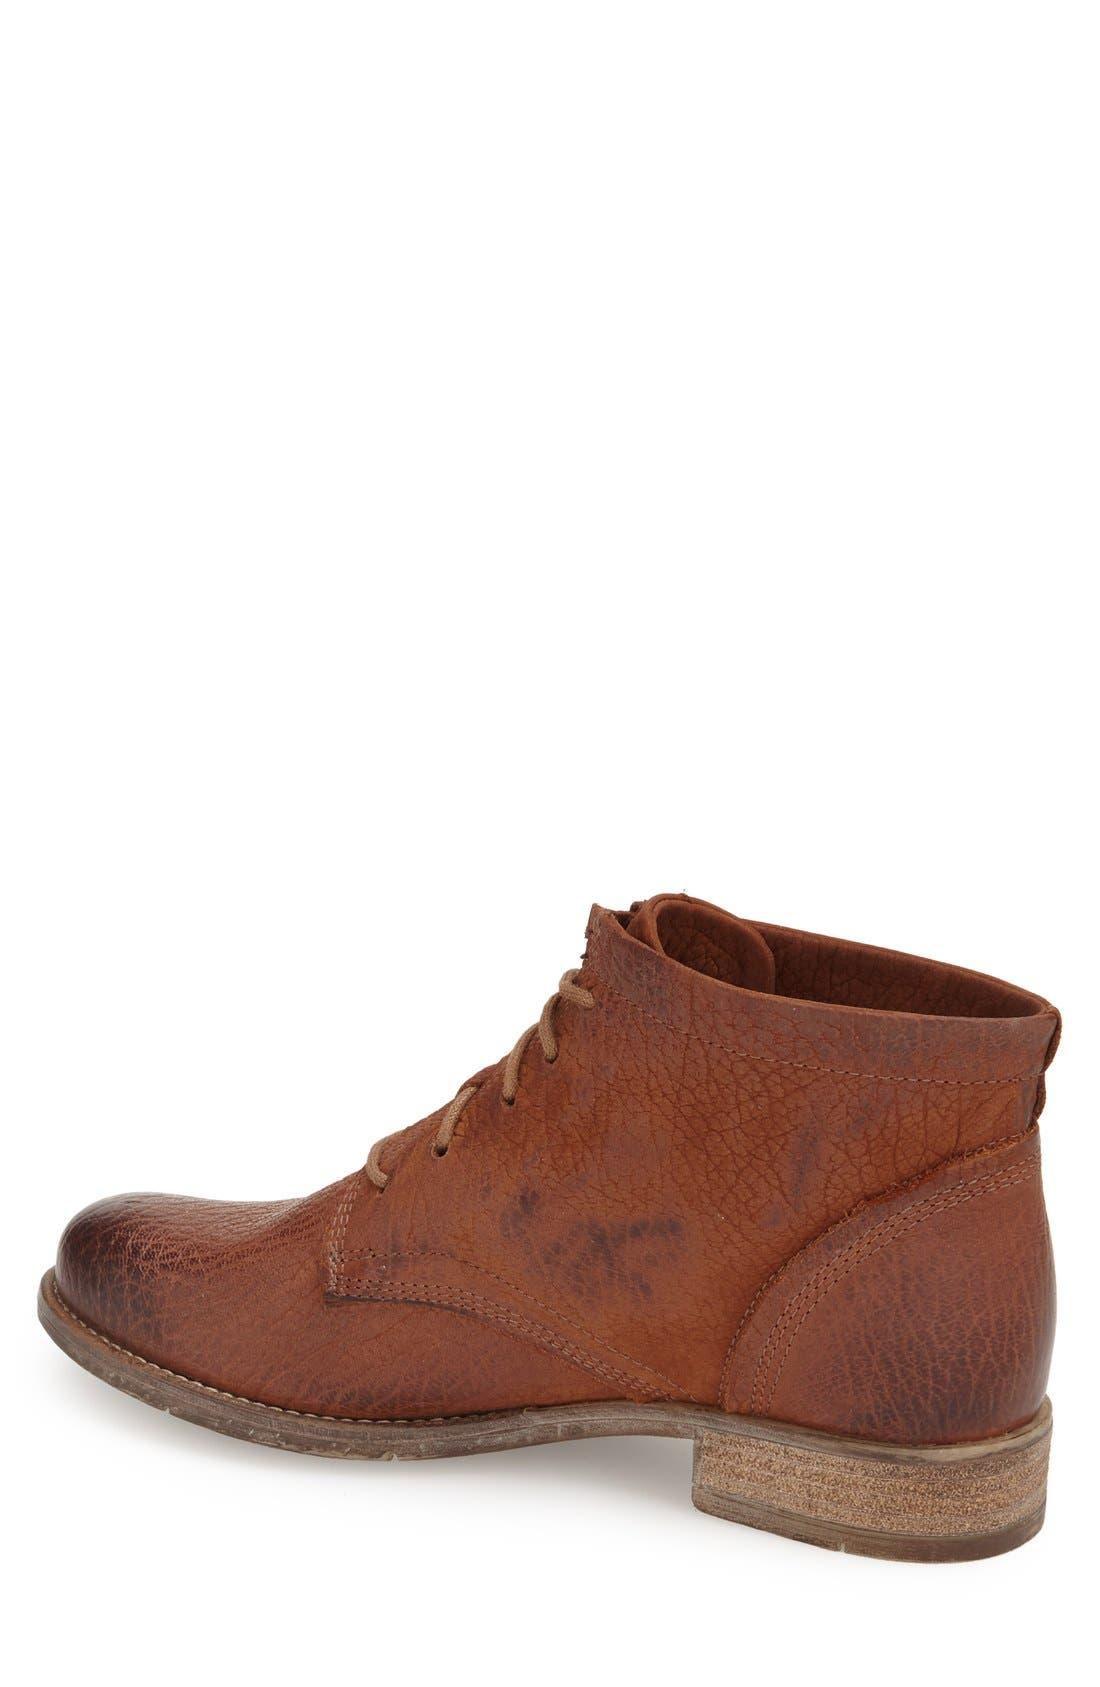 'Sienna 03' Bootie,                             Alternate thumbnail 2, color,                             Castagne Leather